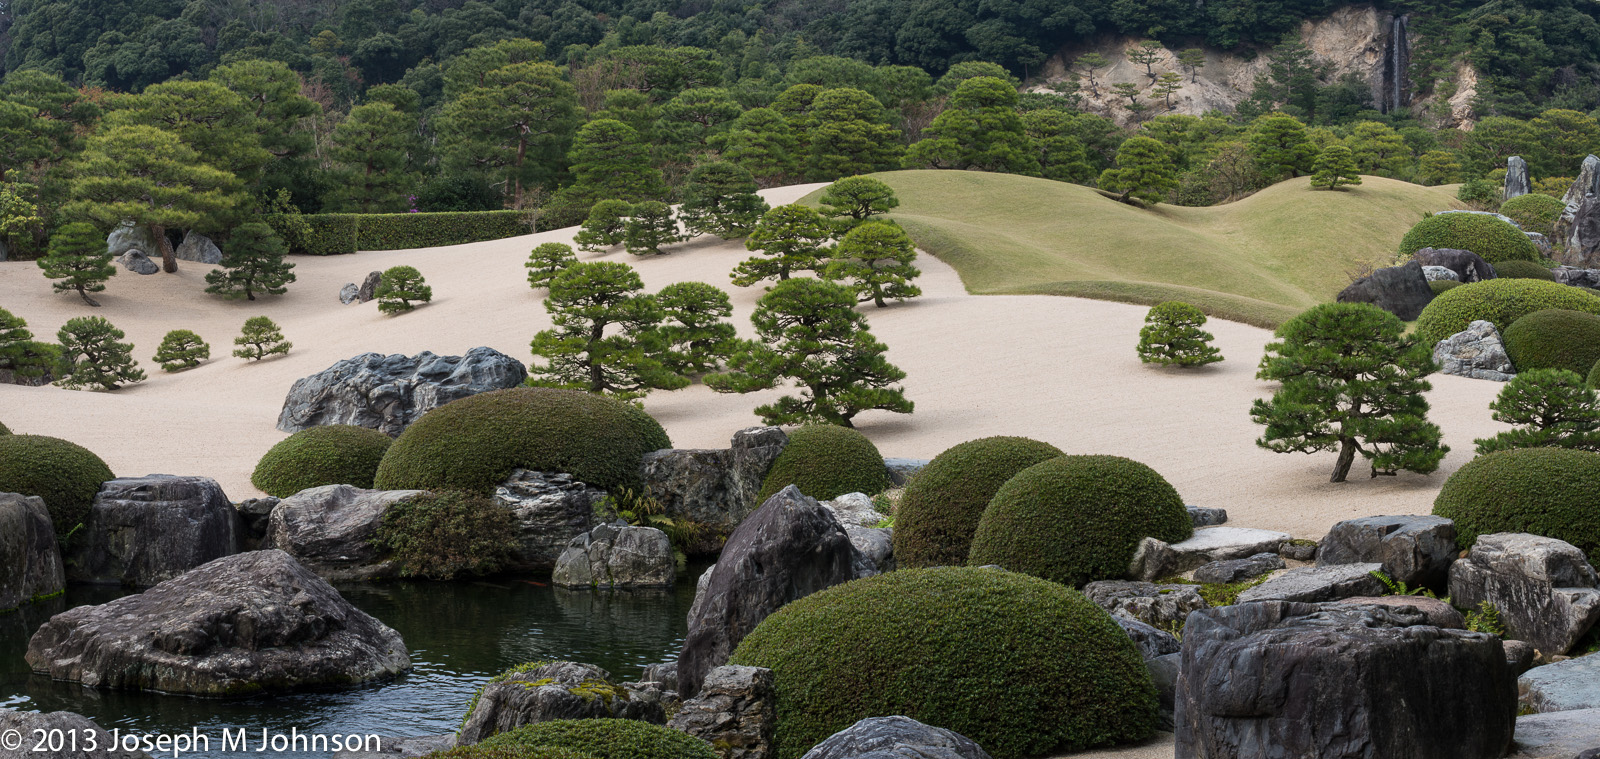 The garden at Adachi Museum in Yasugi has a perfect view from any direction